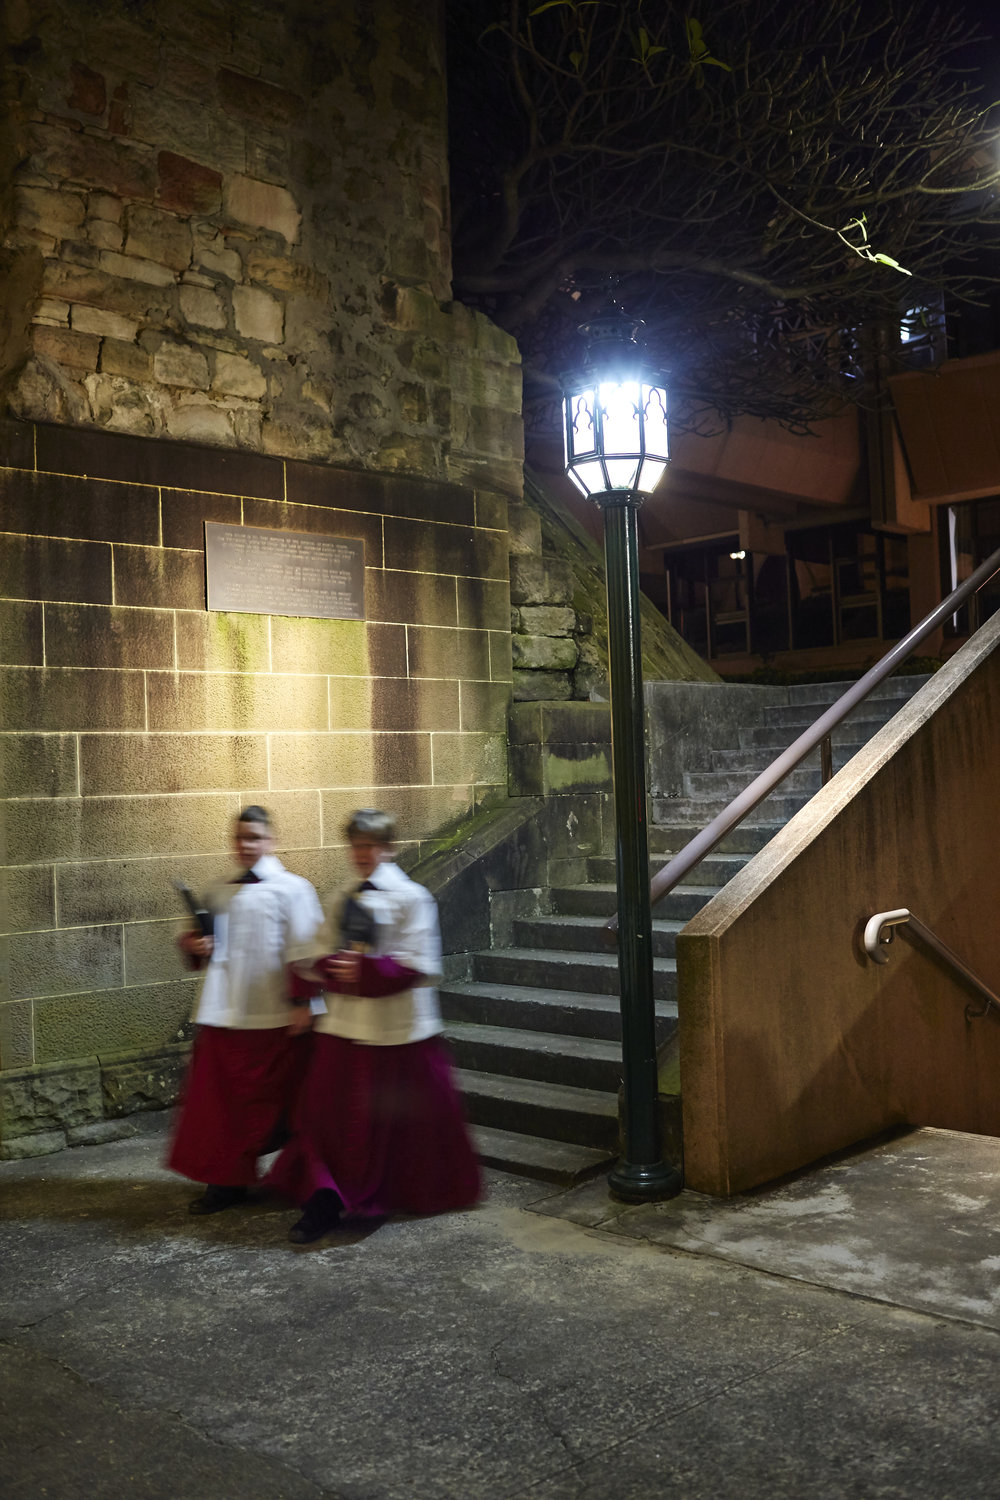 Two Choristers of Saint Mary's Cathedral Choir return walk past a lamp-post at night.